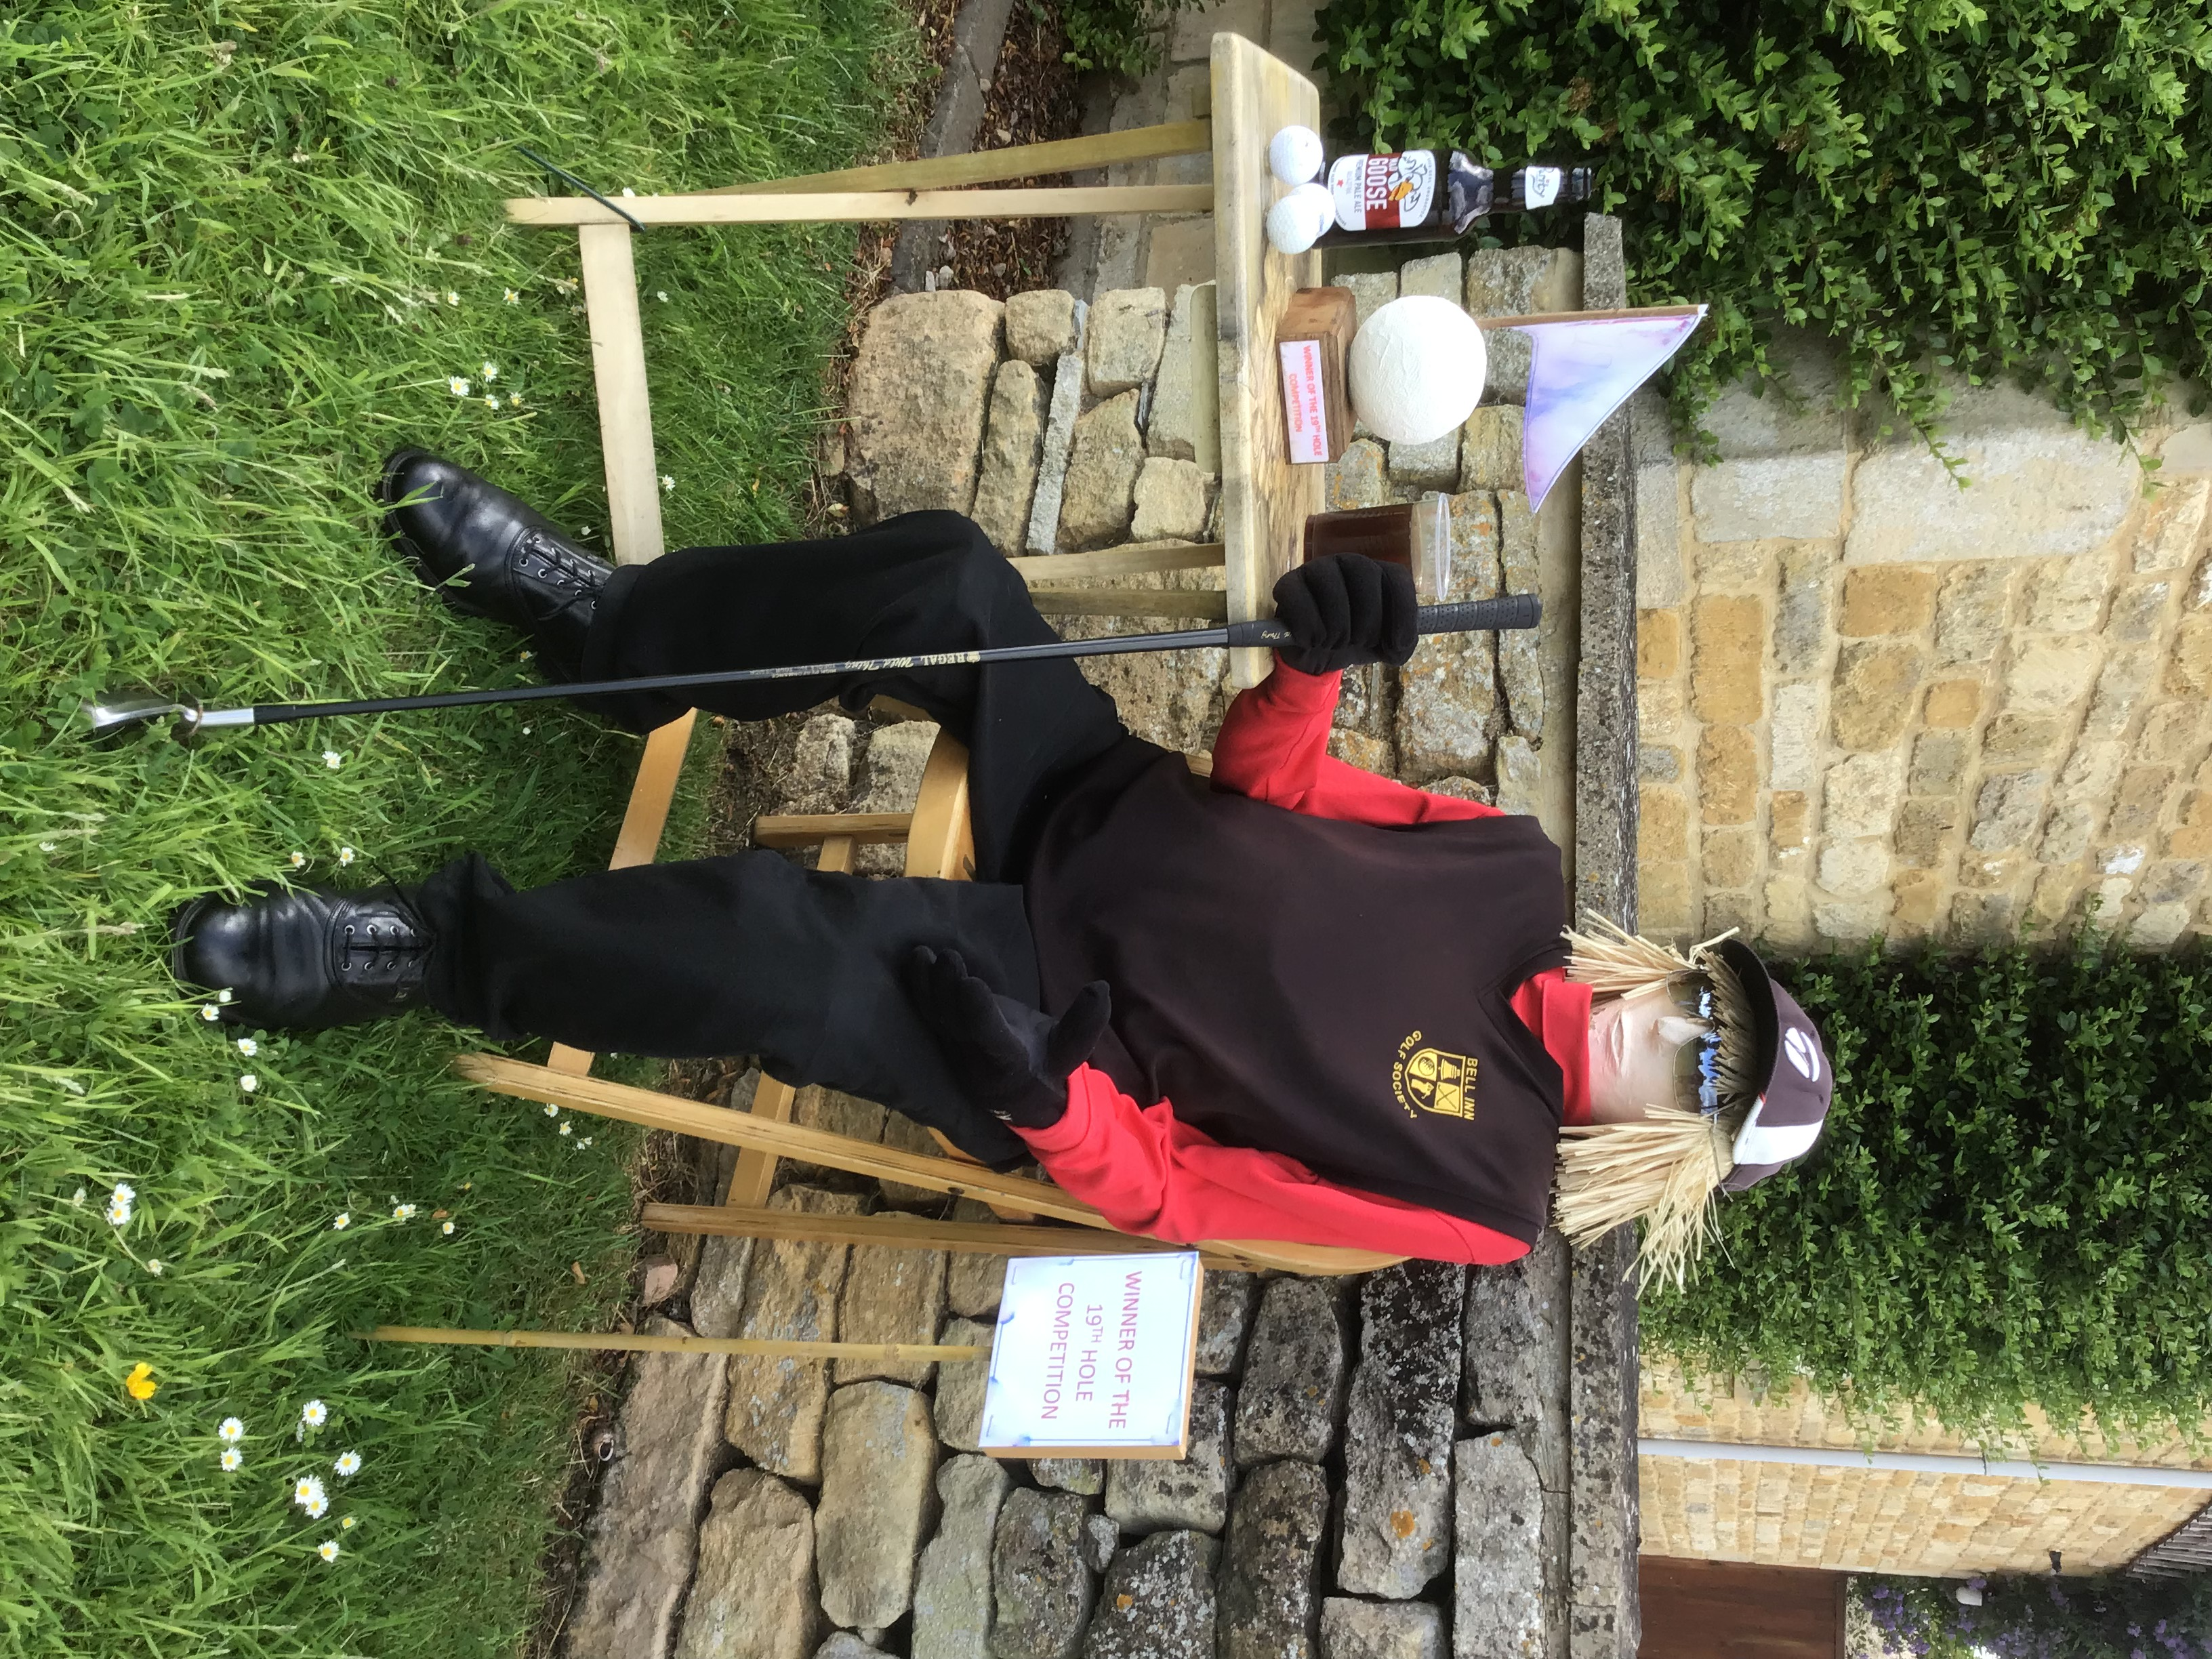 Willersey Scarecrow 98 2021